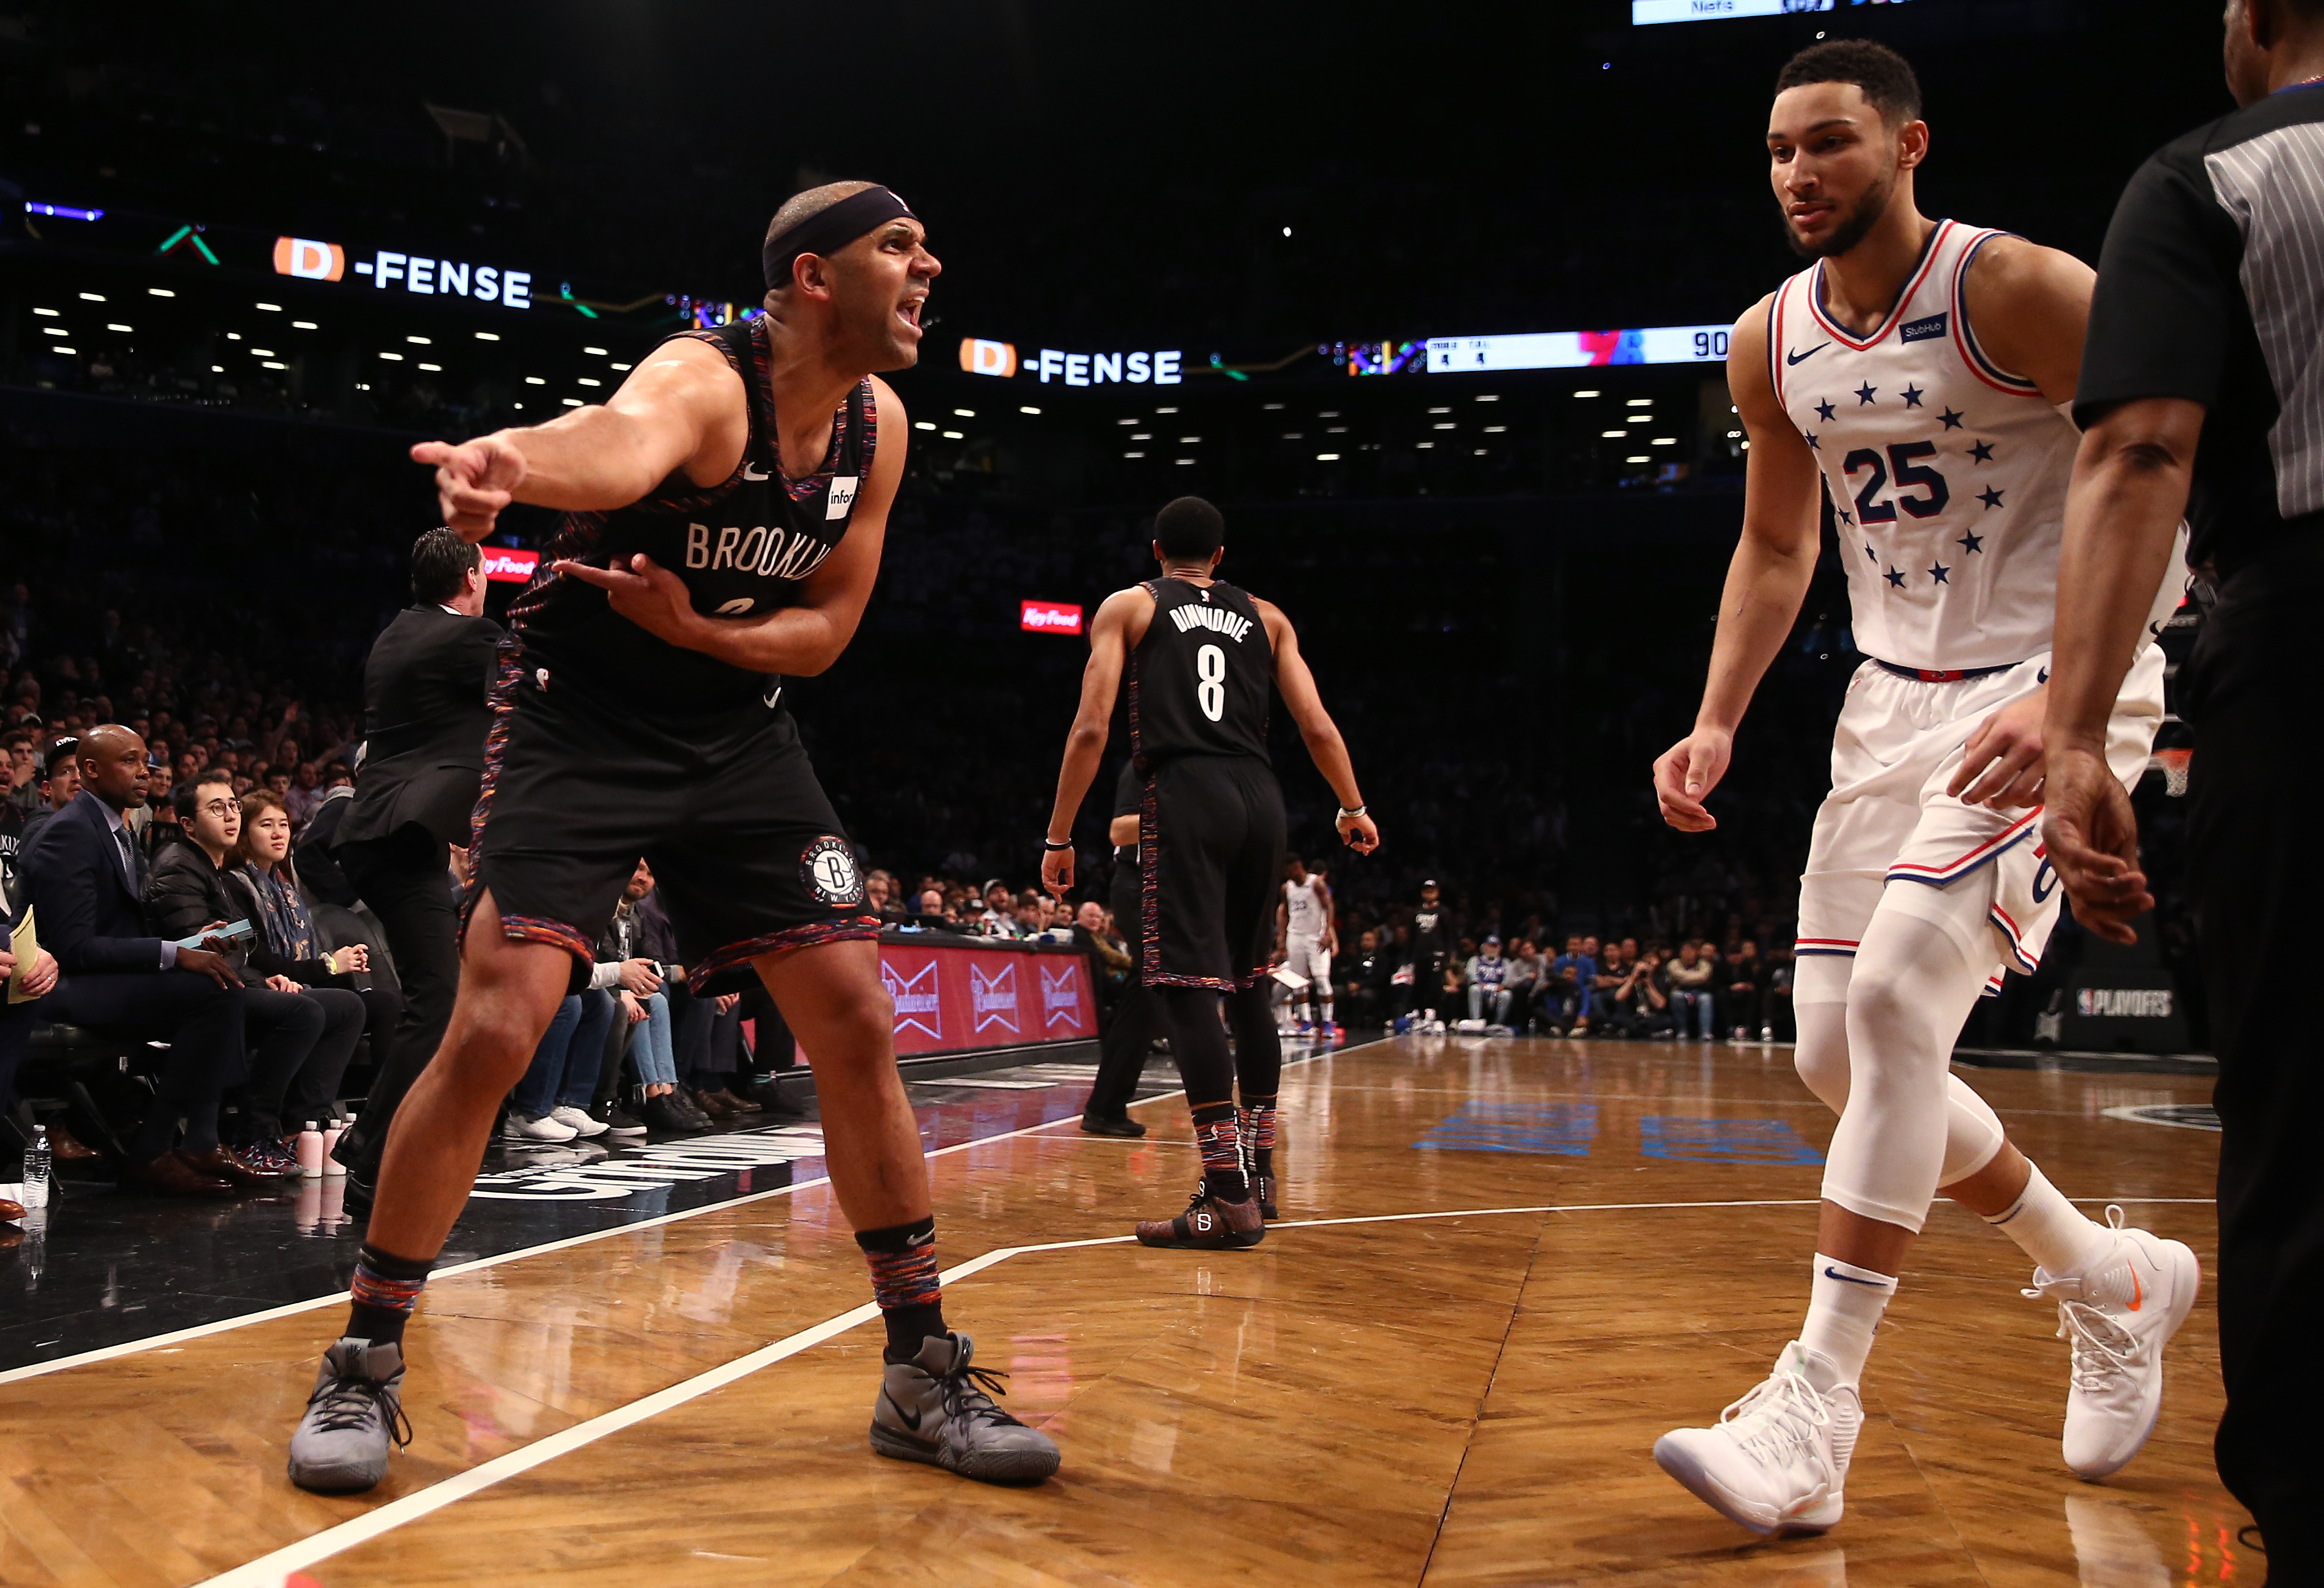 Nets-76ers fight: The simmering Ben Simmons vs. Jared Dudley beef finally boiled over